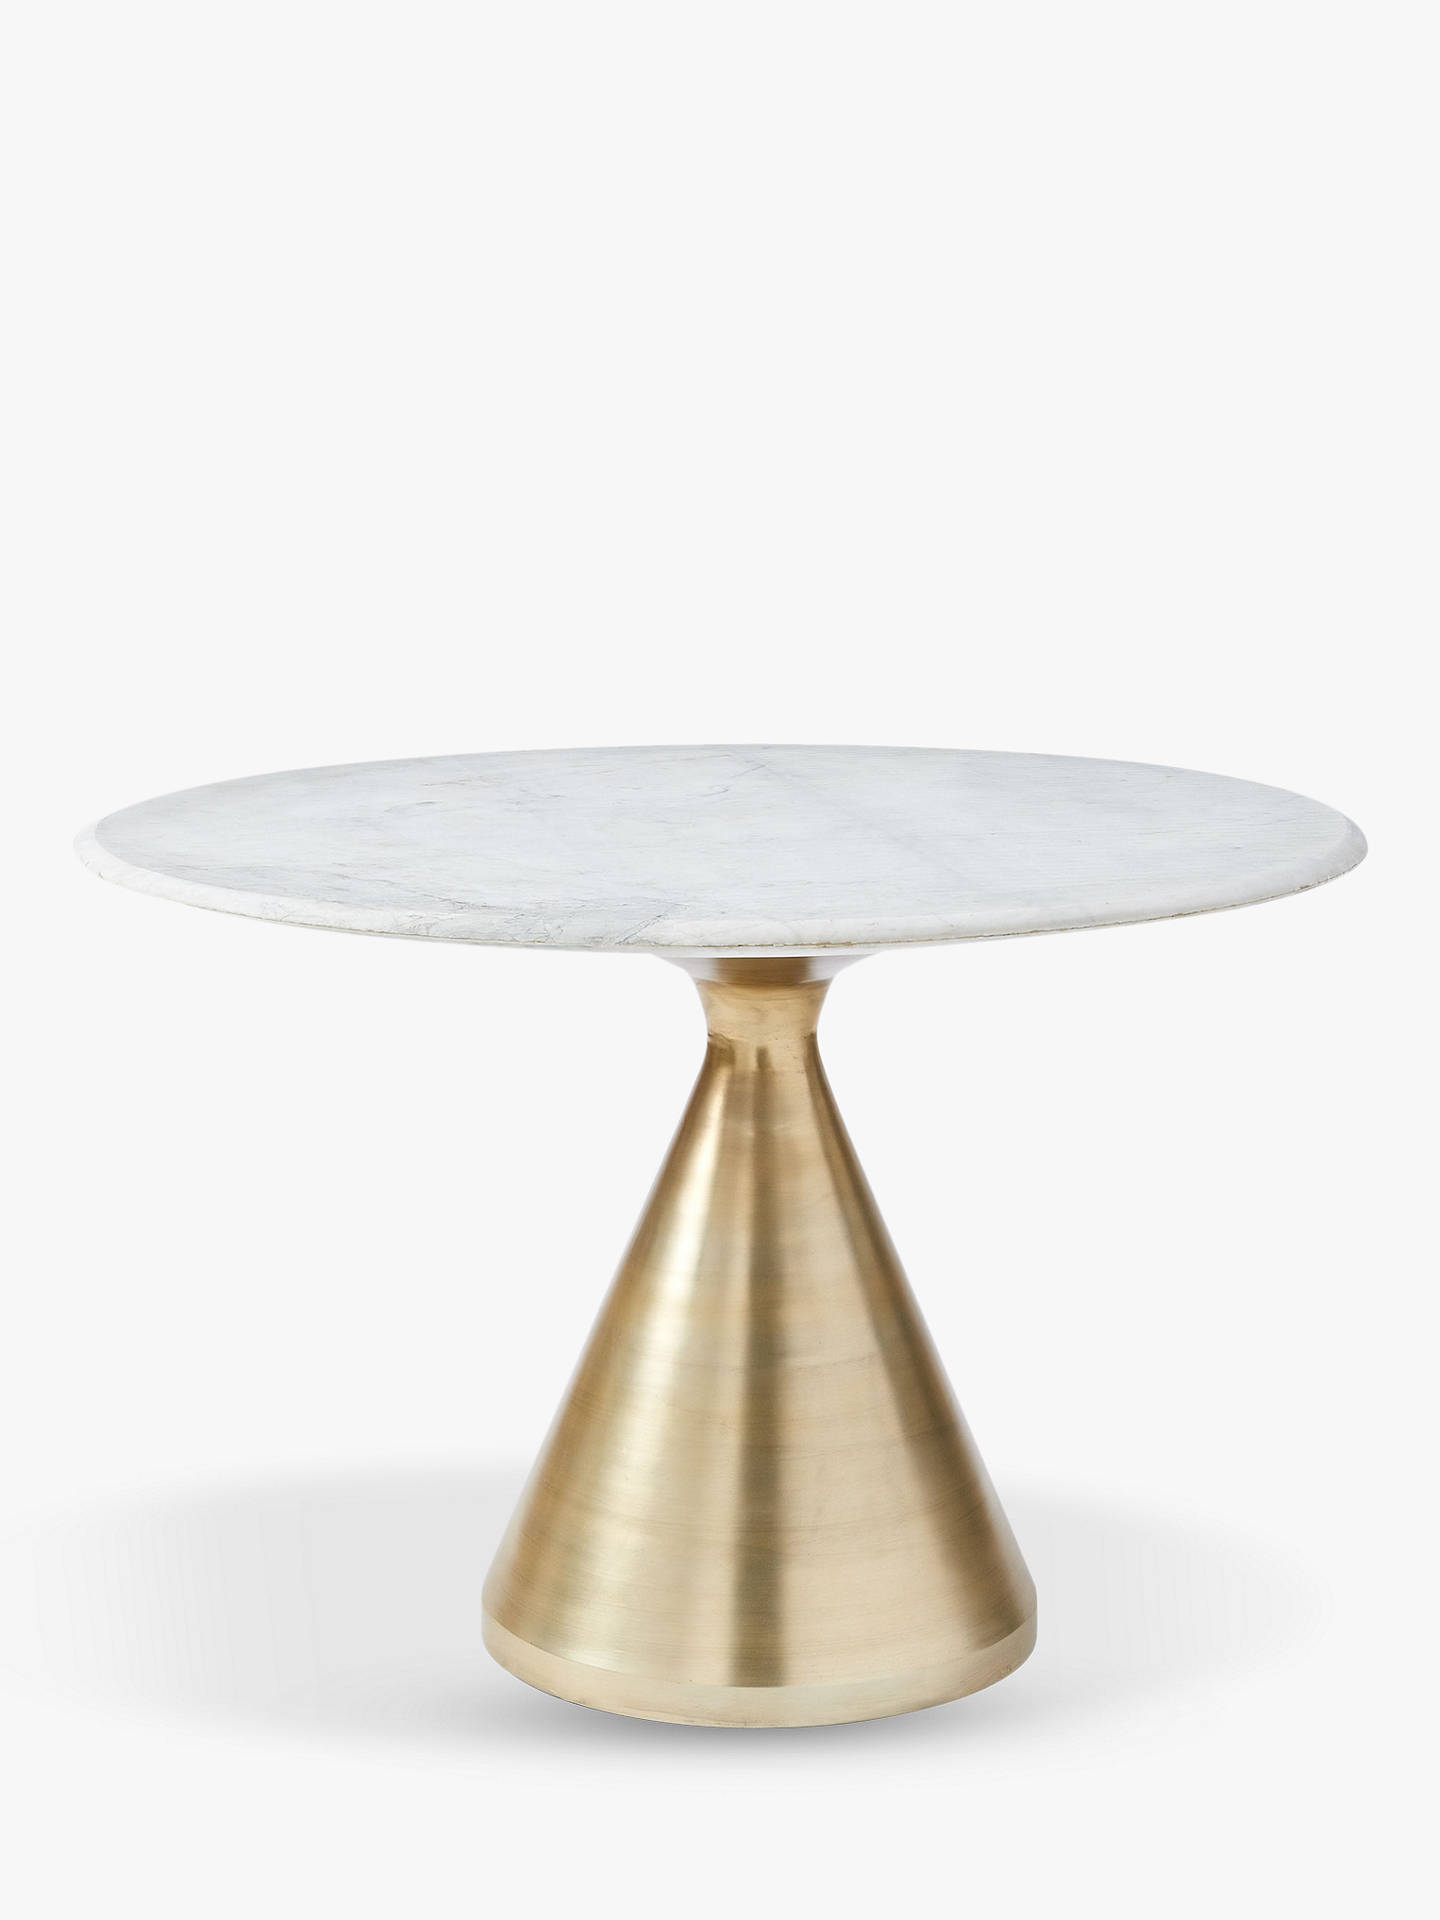 West Elm Silhouette Marble 4 Seater Pedestal Dining Table Bronze